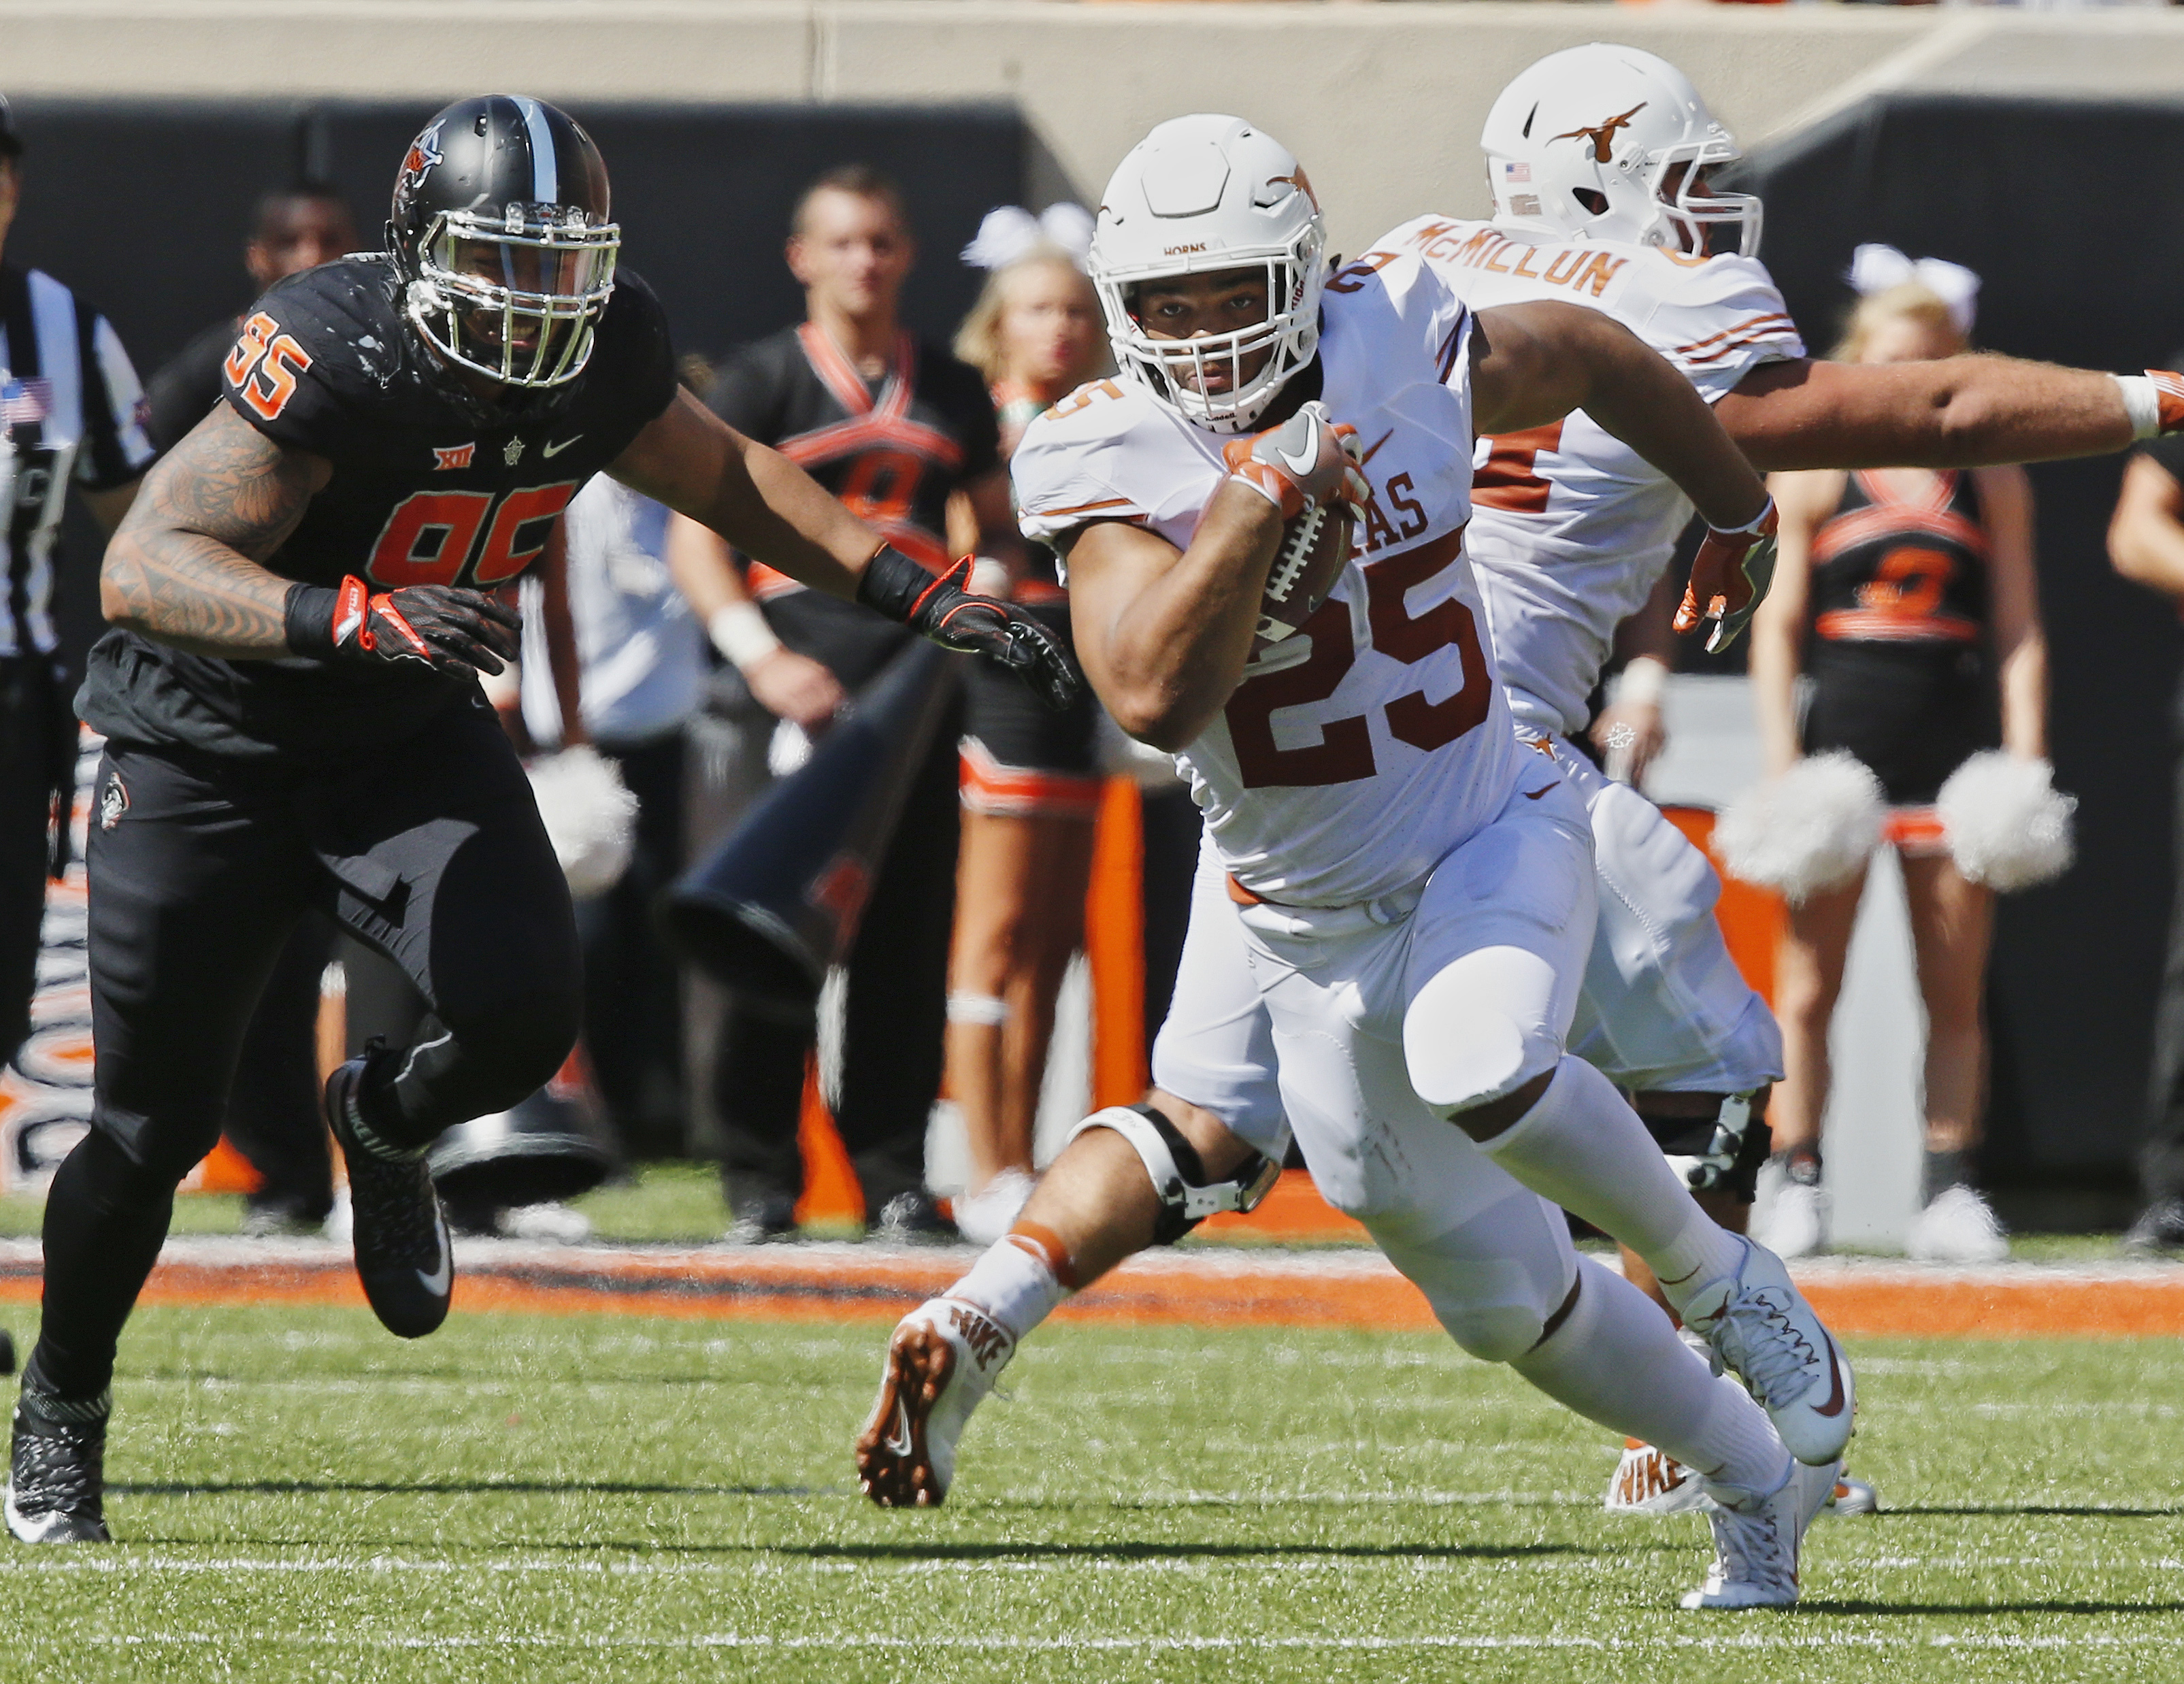 Texas running back Chris Warren III (25) carries past Oklahoma State defensive tackle Vili Leveni (95) in the first half of an NCAA college football game in Stillwater, Okla., Saturday, Oct. 1, 2016.  Oklahoma State won 49-31. (AP Photo/Sue Ogrocki)